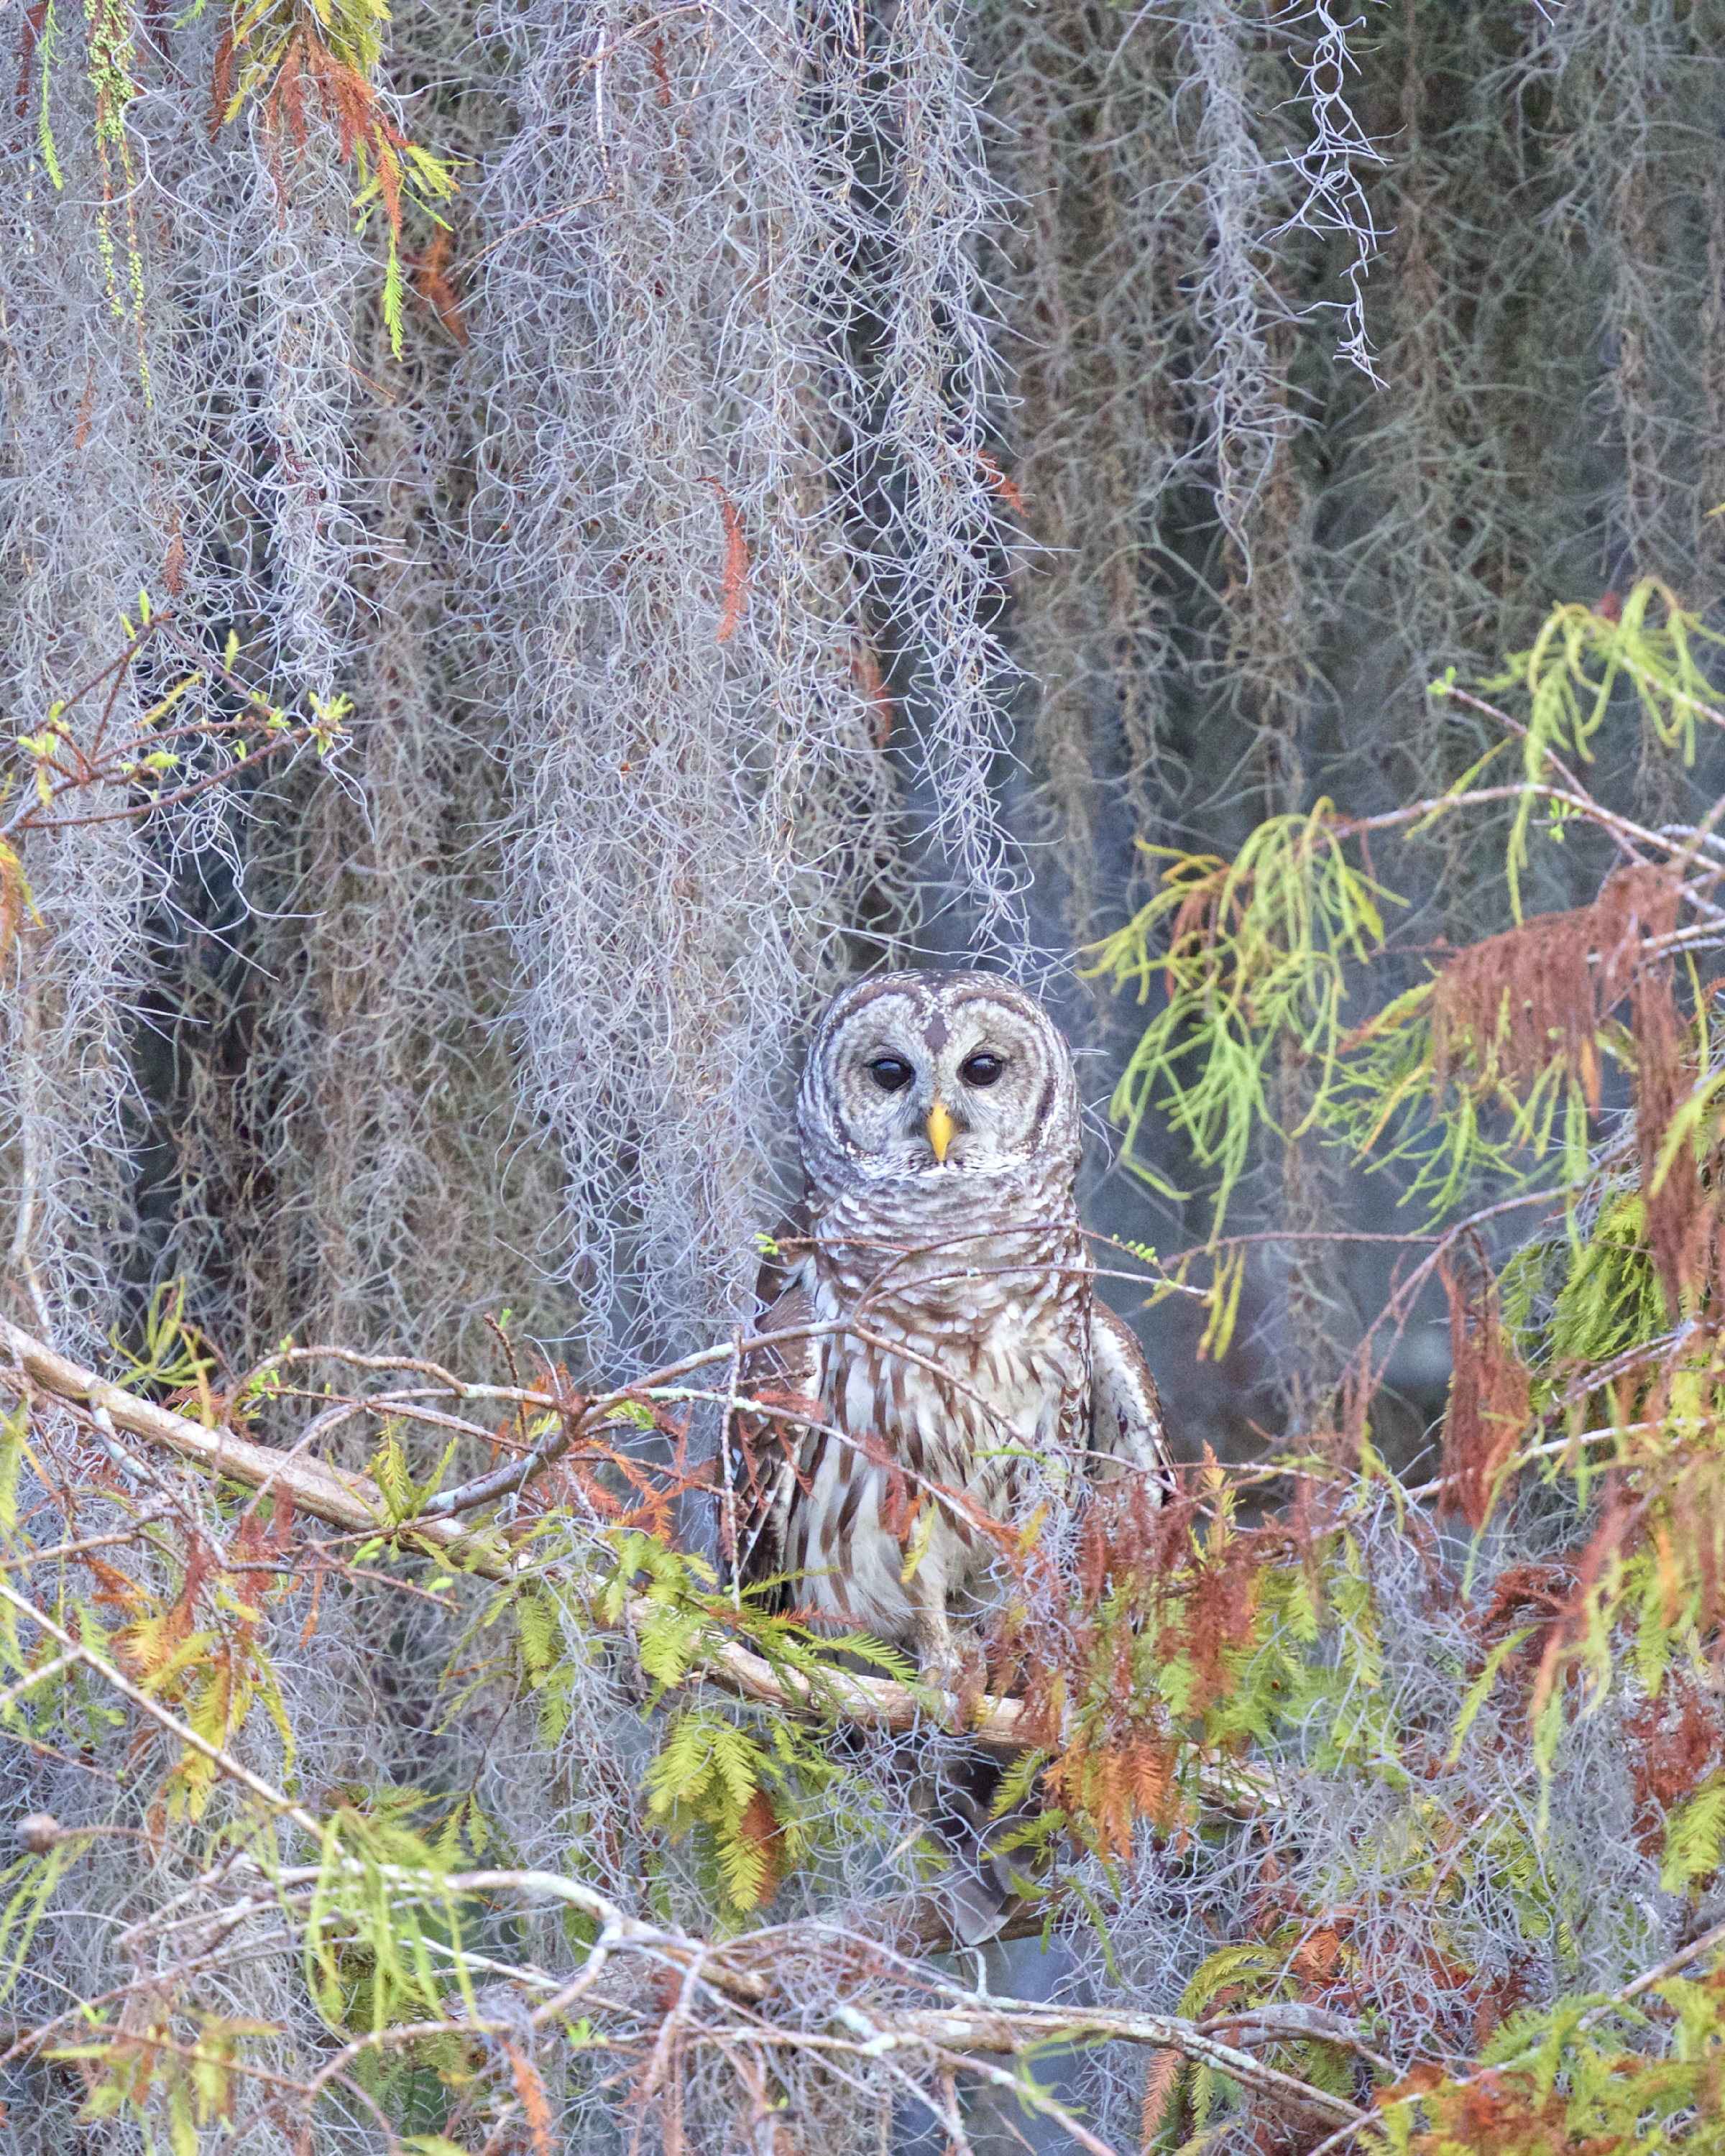 The Barred Owl is lured by our trick call and peers out of the tree to find the source of the strange sounding hoot.